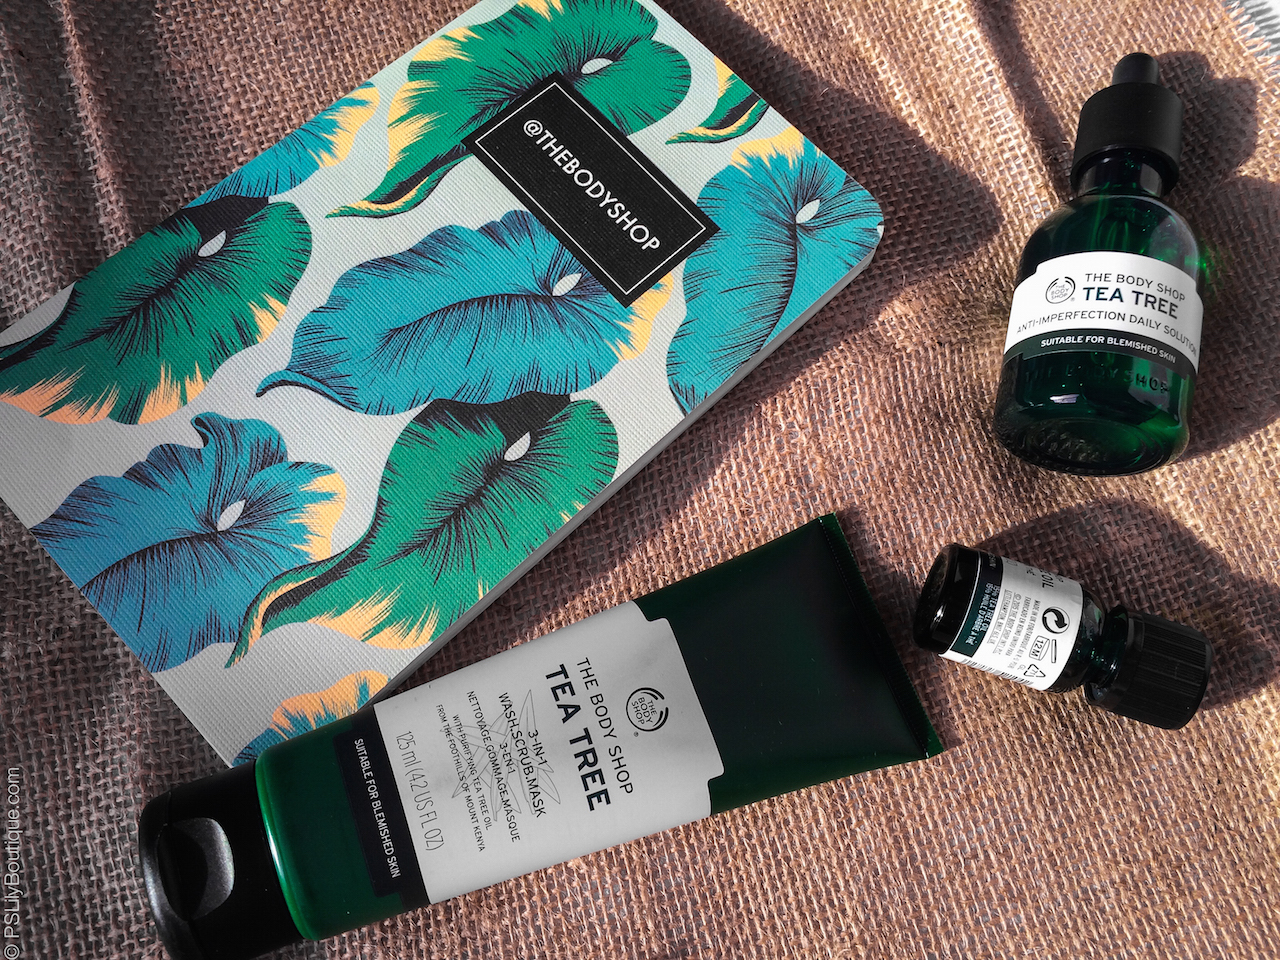 instagram-pslilyboutique-la-fashion-blogger-traveler-the-body-shop-tea-tree-oil-vegan-beauty-products-review-summer-2016-8-29-16